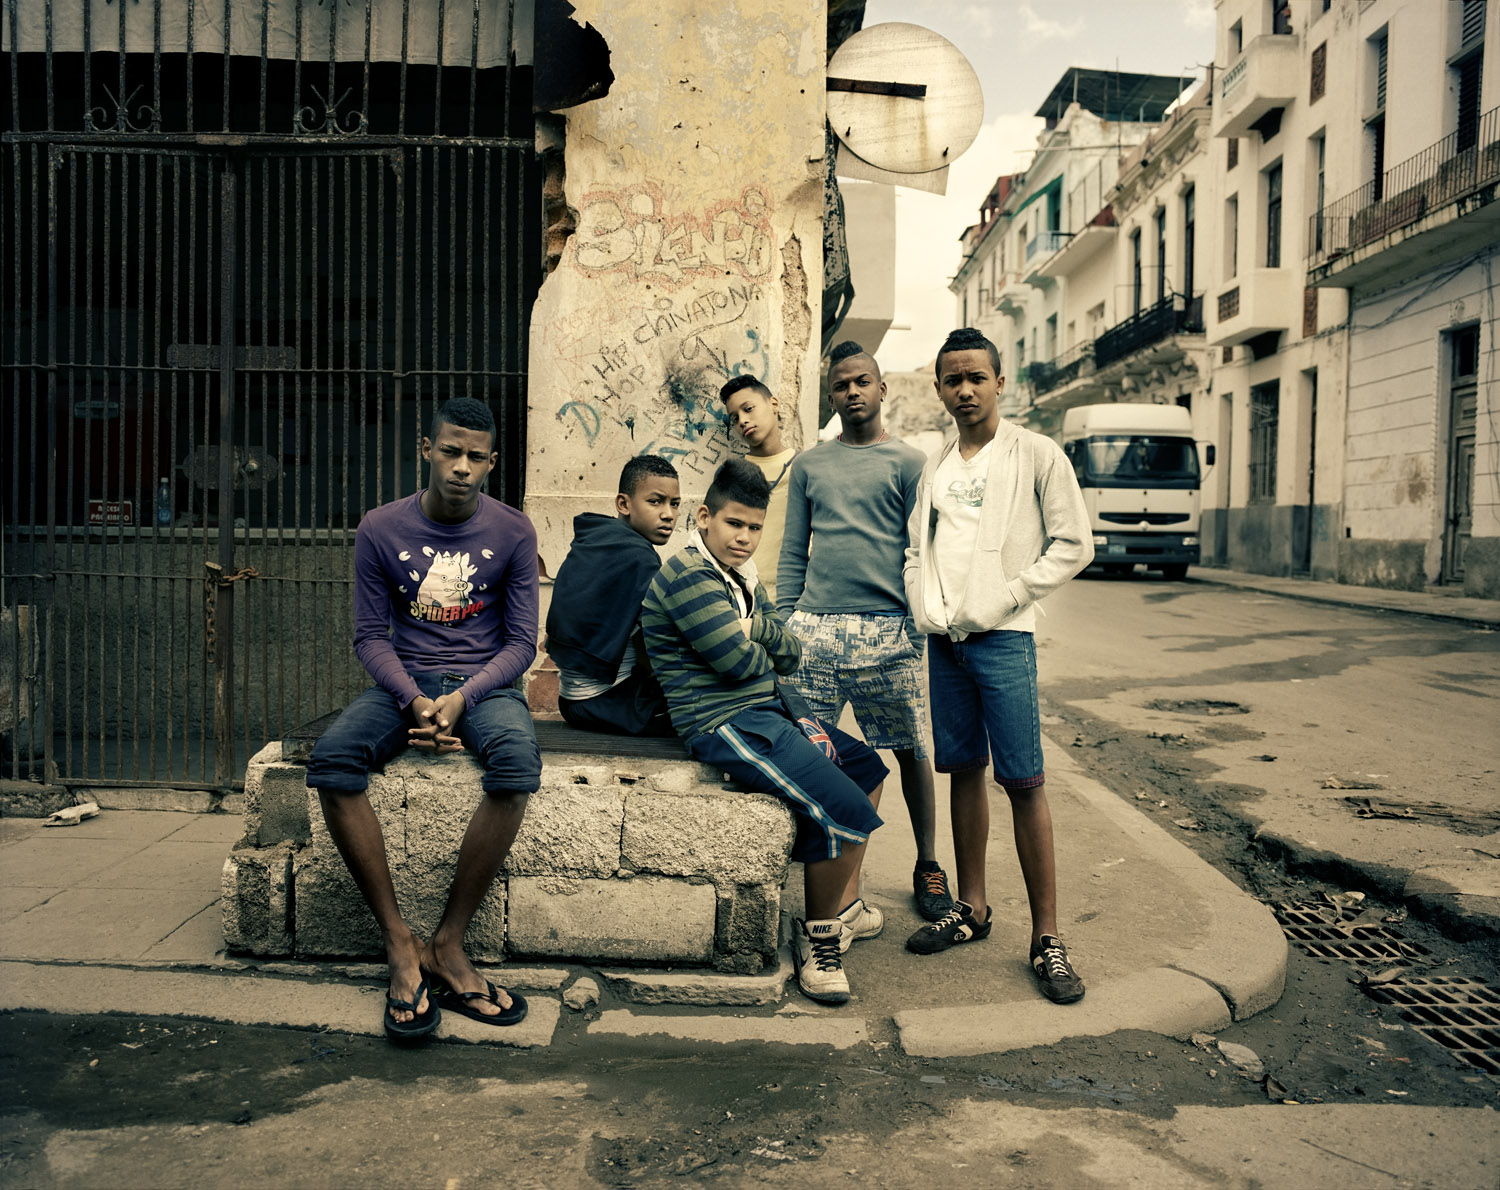 A group of youngsters in Central Havana sit on a street corner to discuss the latest news of the Spanish La Liga football league. Their hair is styled like their idols'—soccer stars and Reggaeton singers.